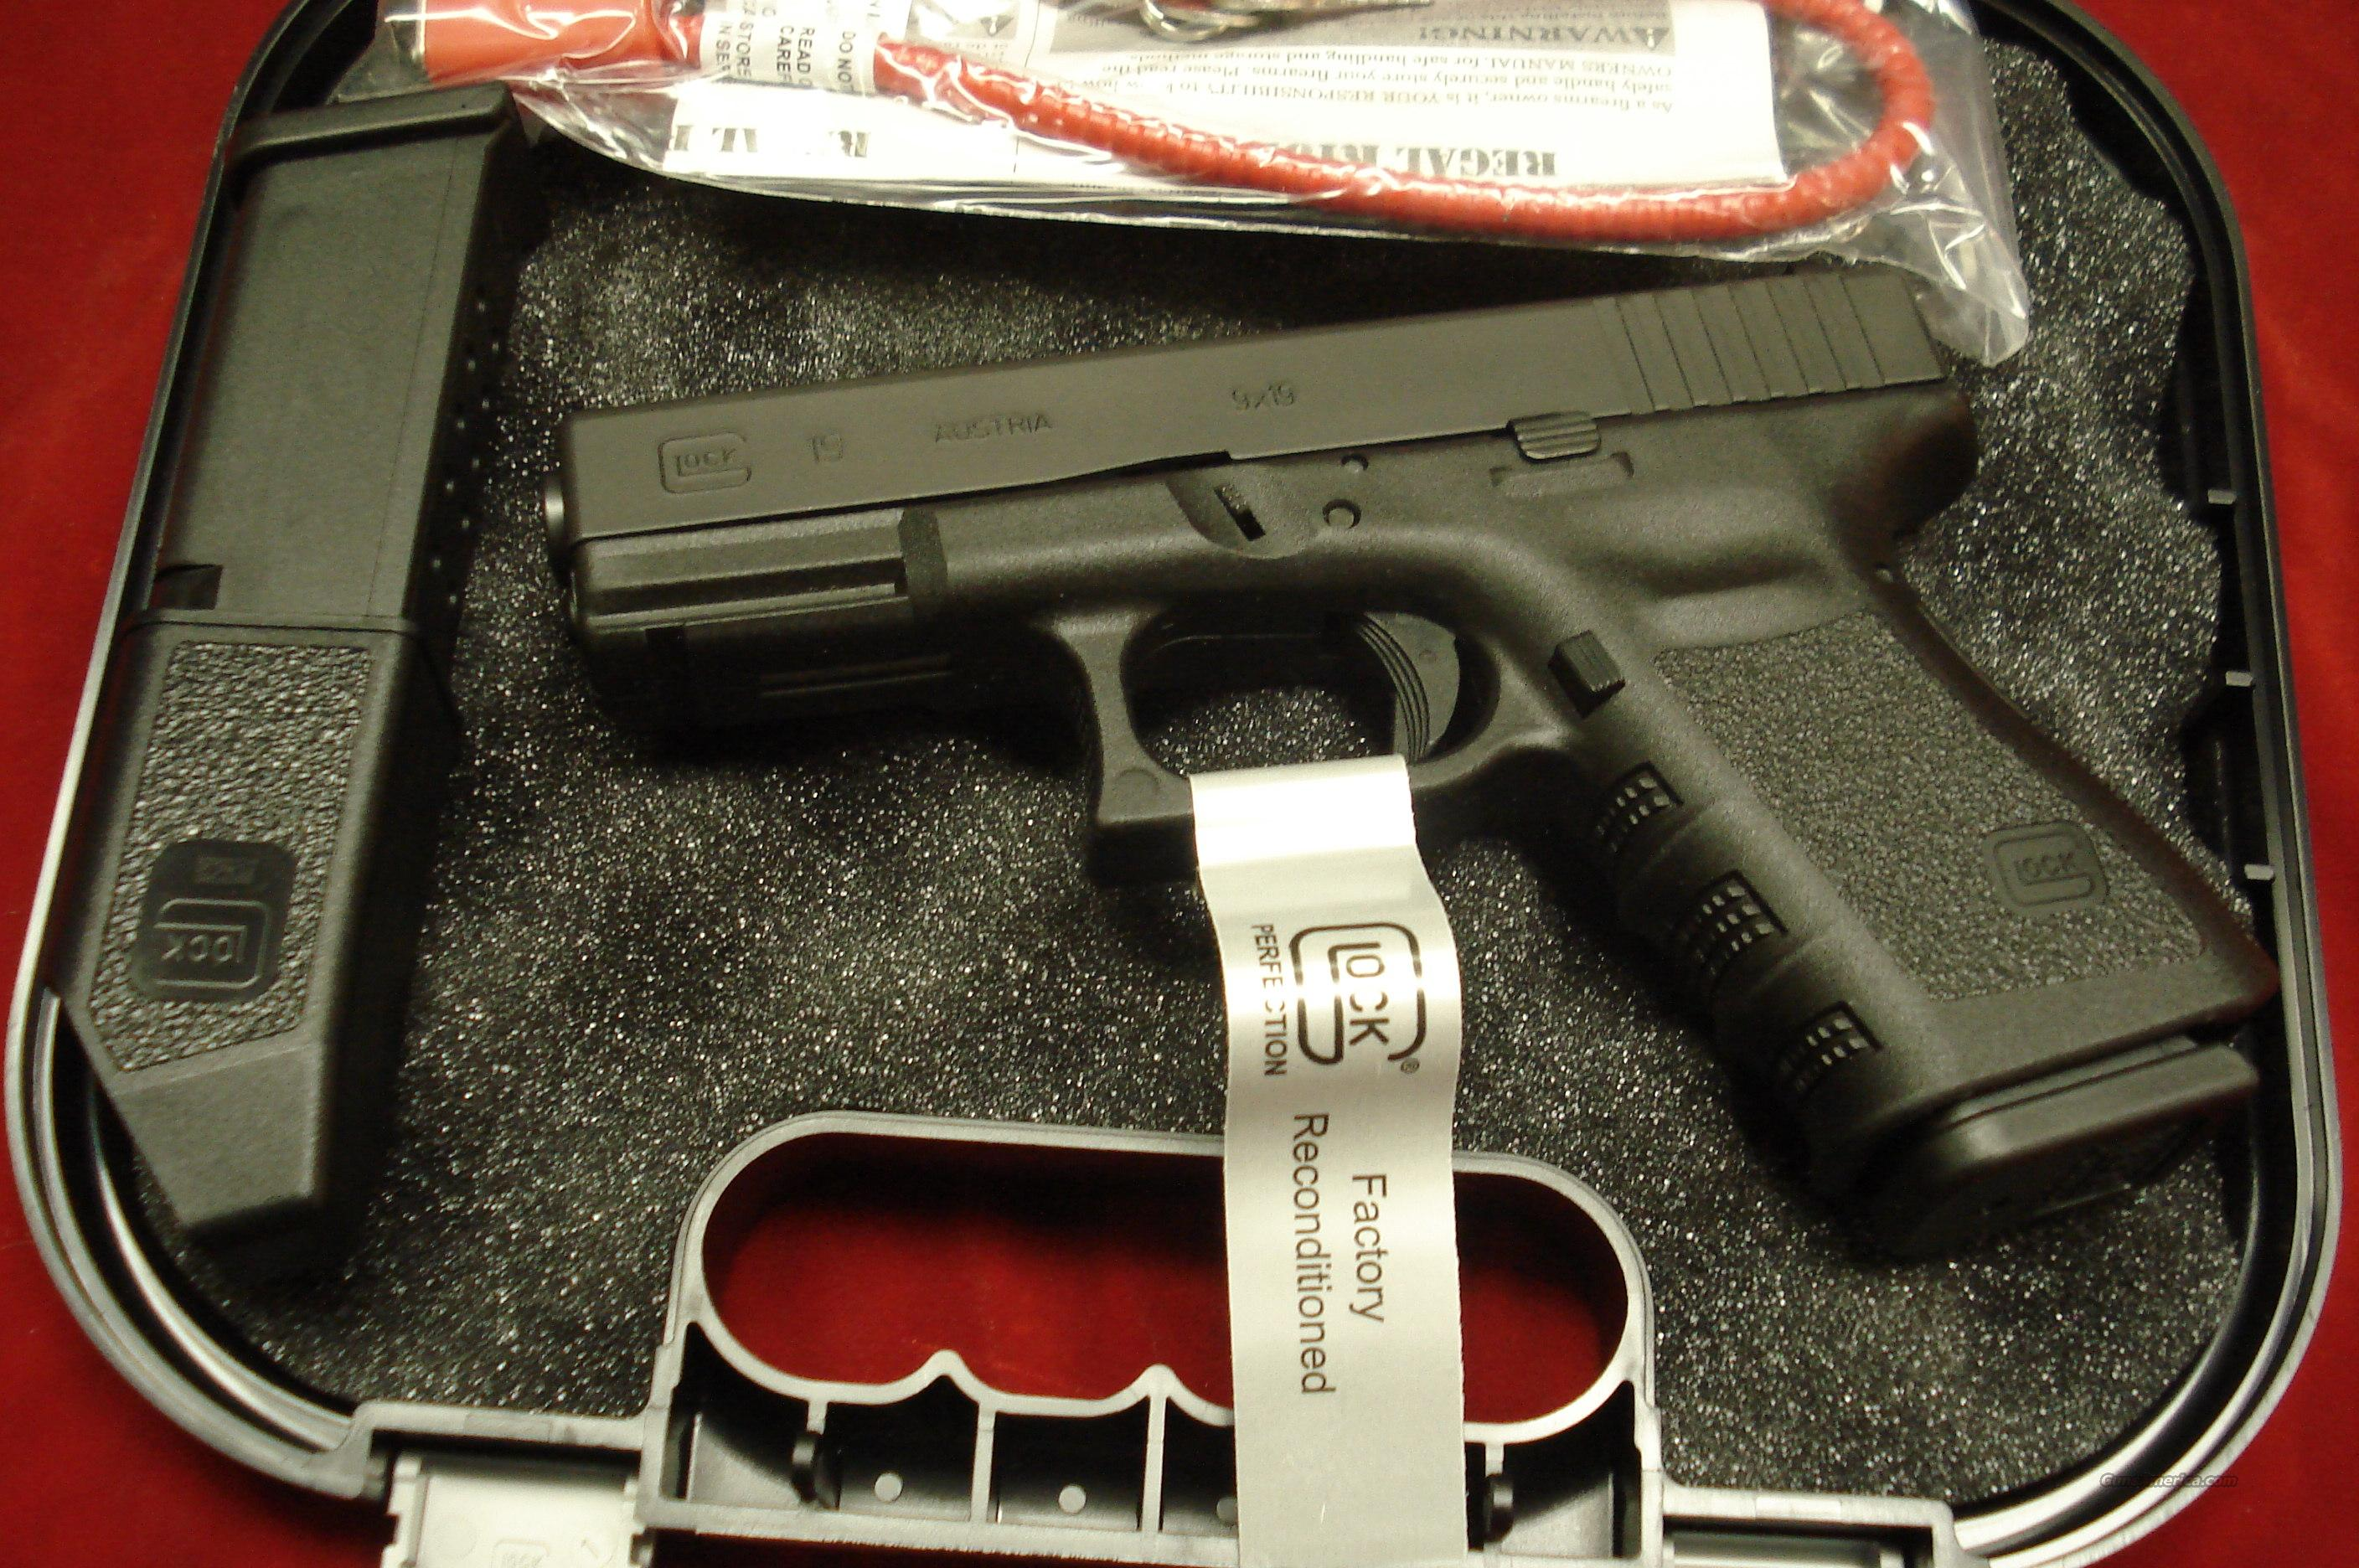 GLOCK MODEL 19 GEN3 FACTORY RECONDITIONED WITH HIGH CAPACITY MAGS NEW  Guns > Pistols > Glock Pistols > 19